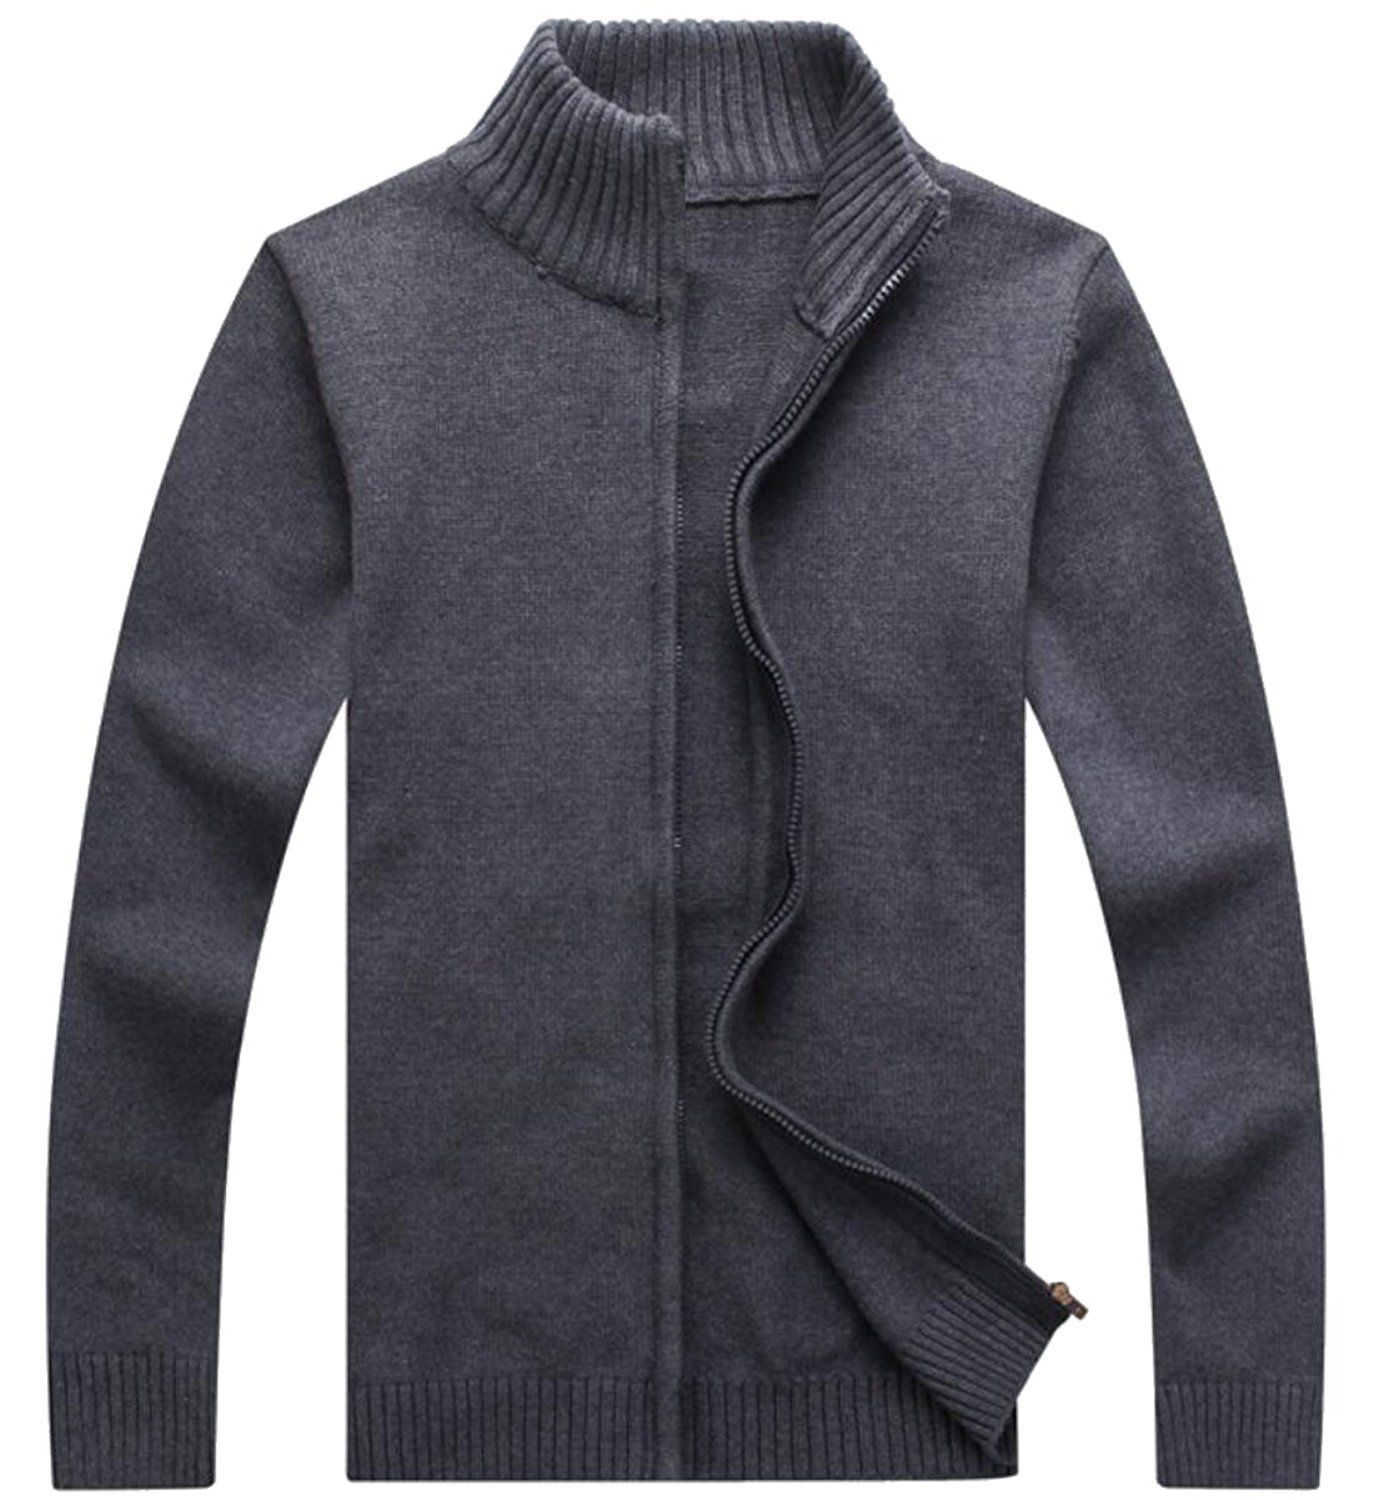 XQS Men's Retro Solid Full Zip Cardigan Sweater Jacket-in Sweaters ...